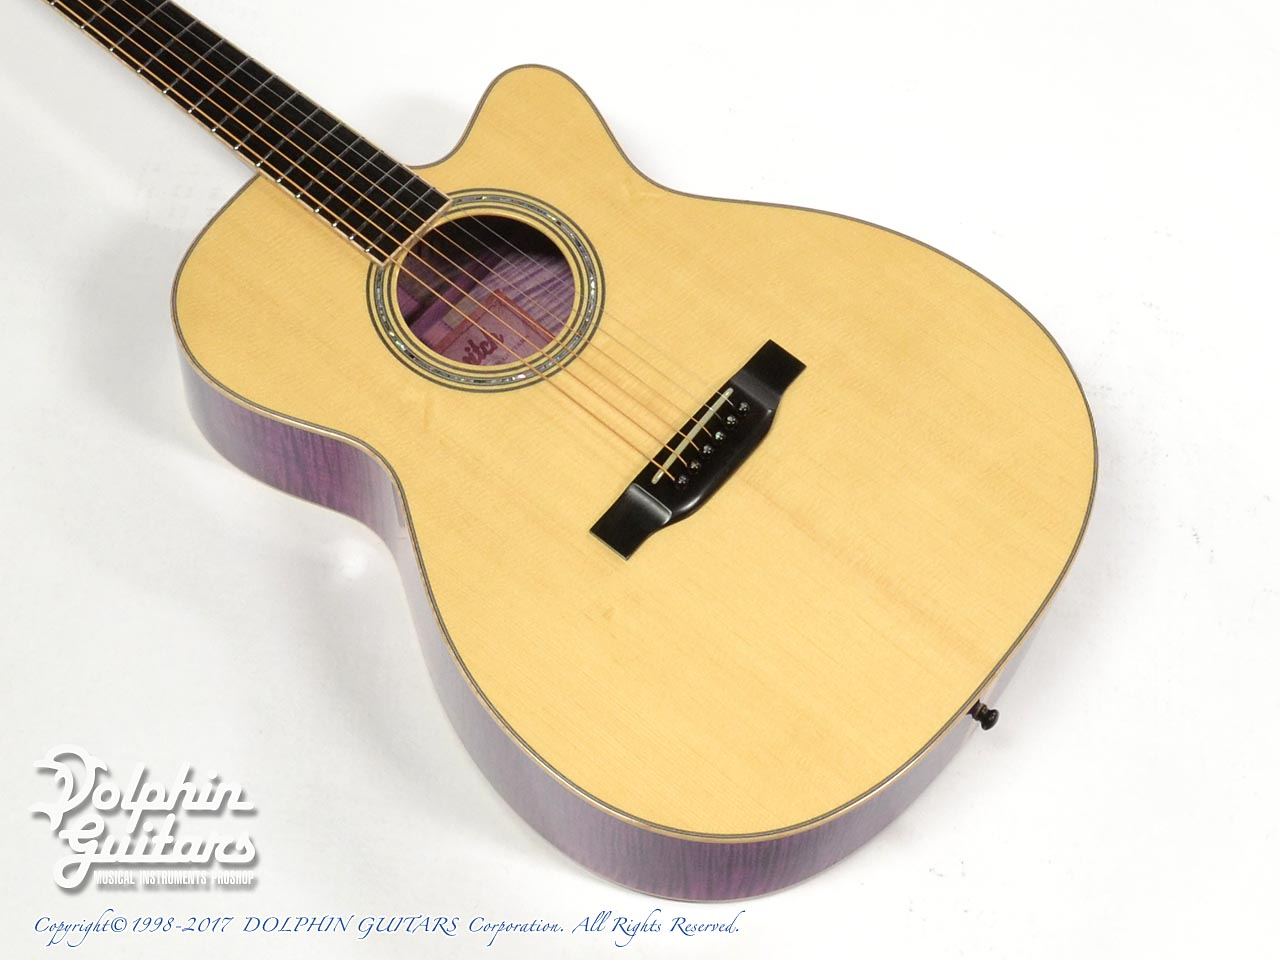 SWITCH: SCOM-3C E-FM (Engelmann Spruce & Flame Maple) (Murasakishikibu) (2)